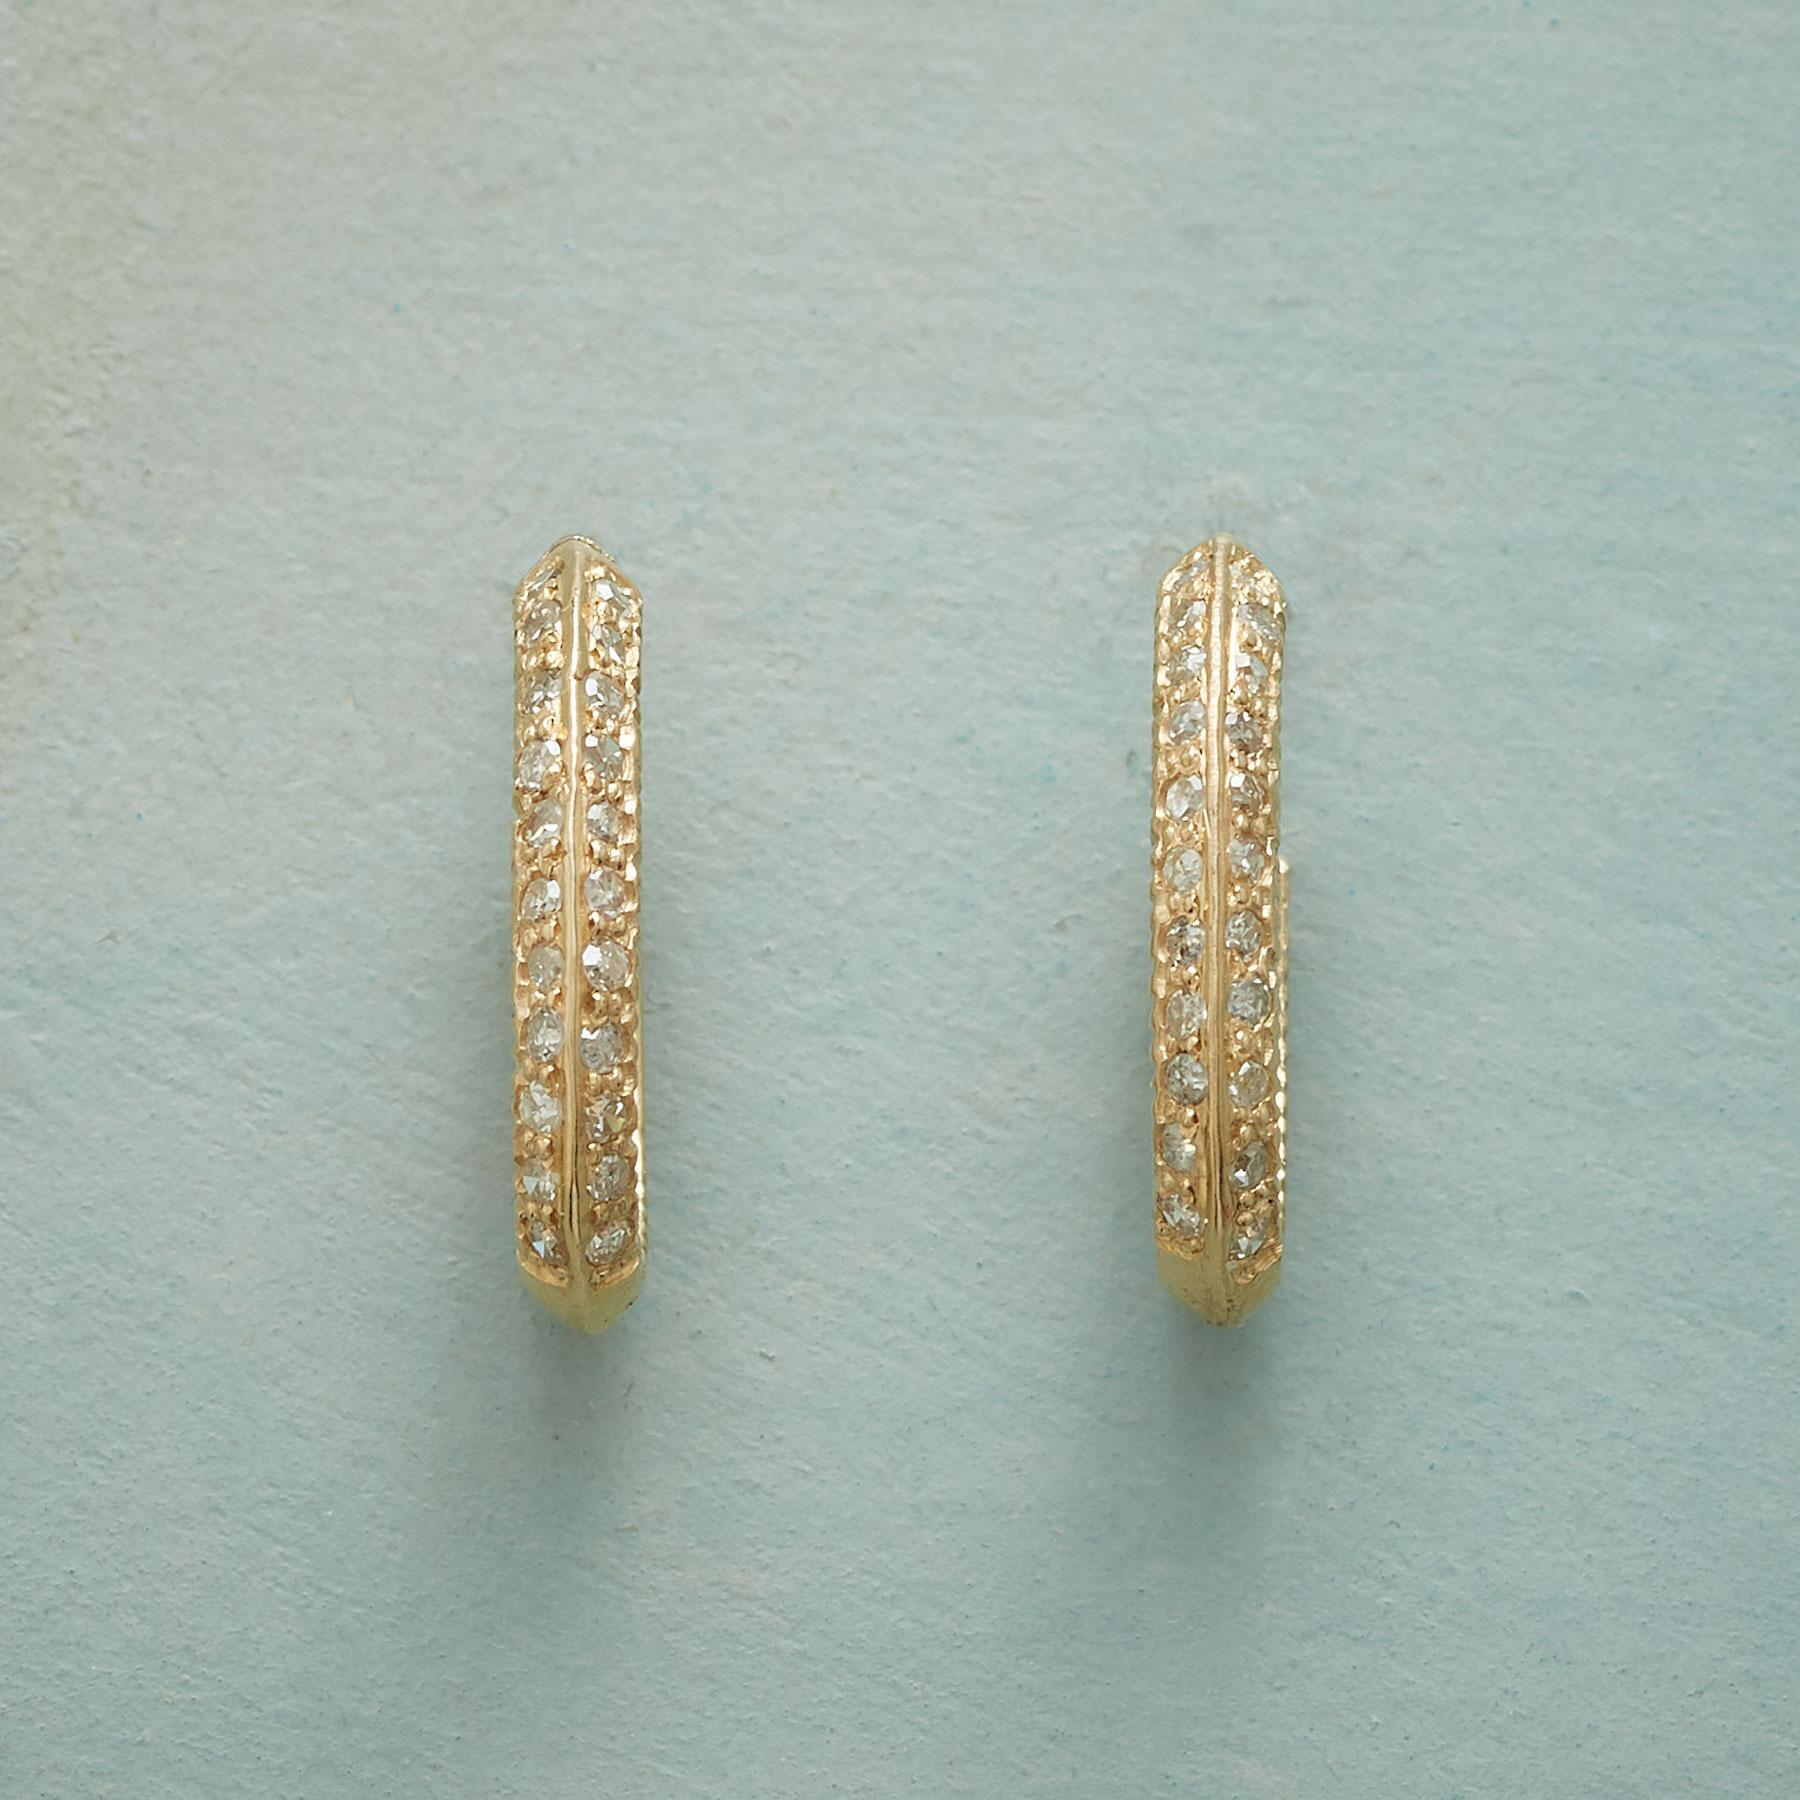 OMNI DIAMOND HOOP EARRINGS: View 1